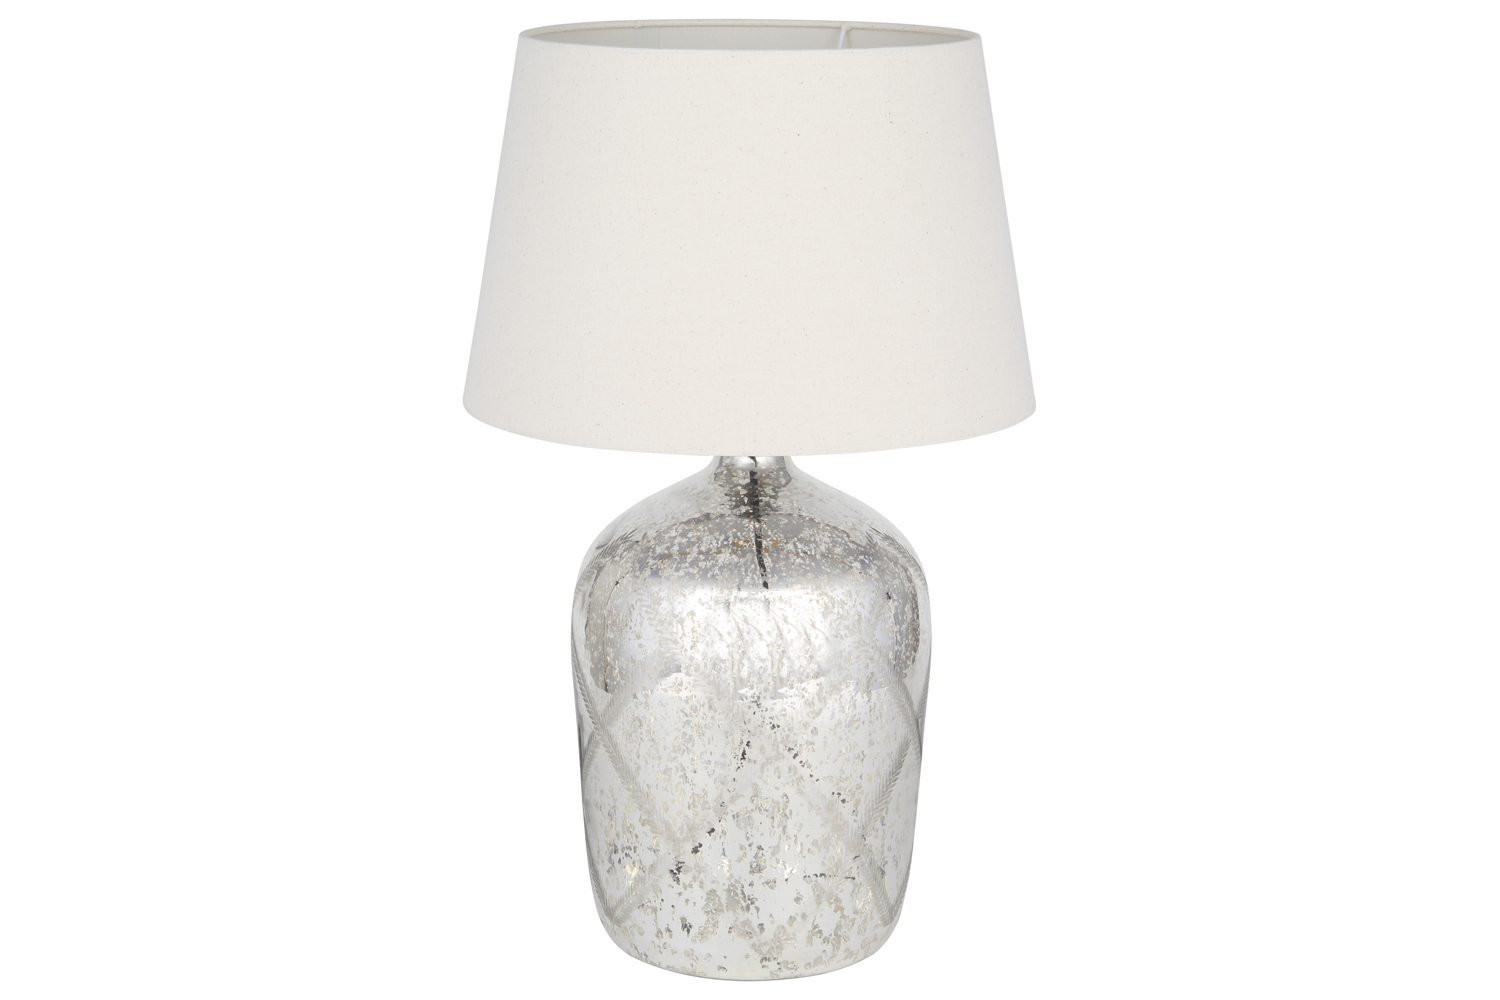 Glass Lamp Tables Ireland Mercury Glass Table Lamp With Pattern Ireland